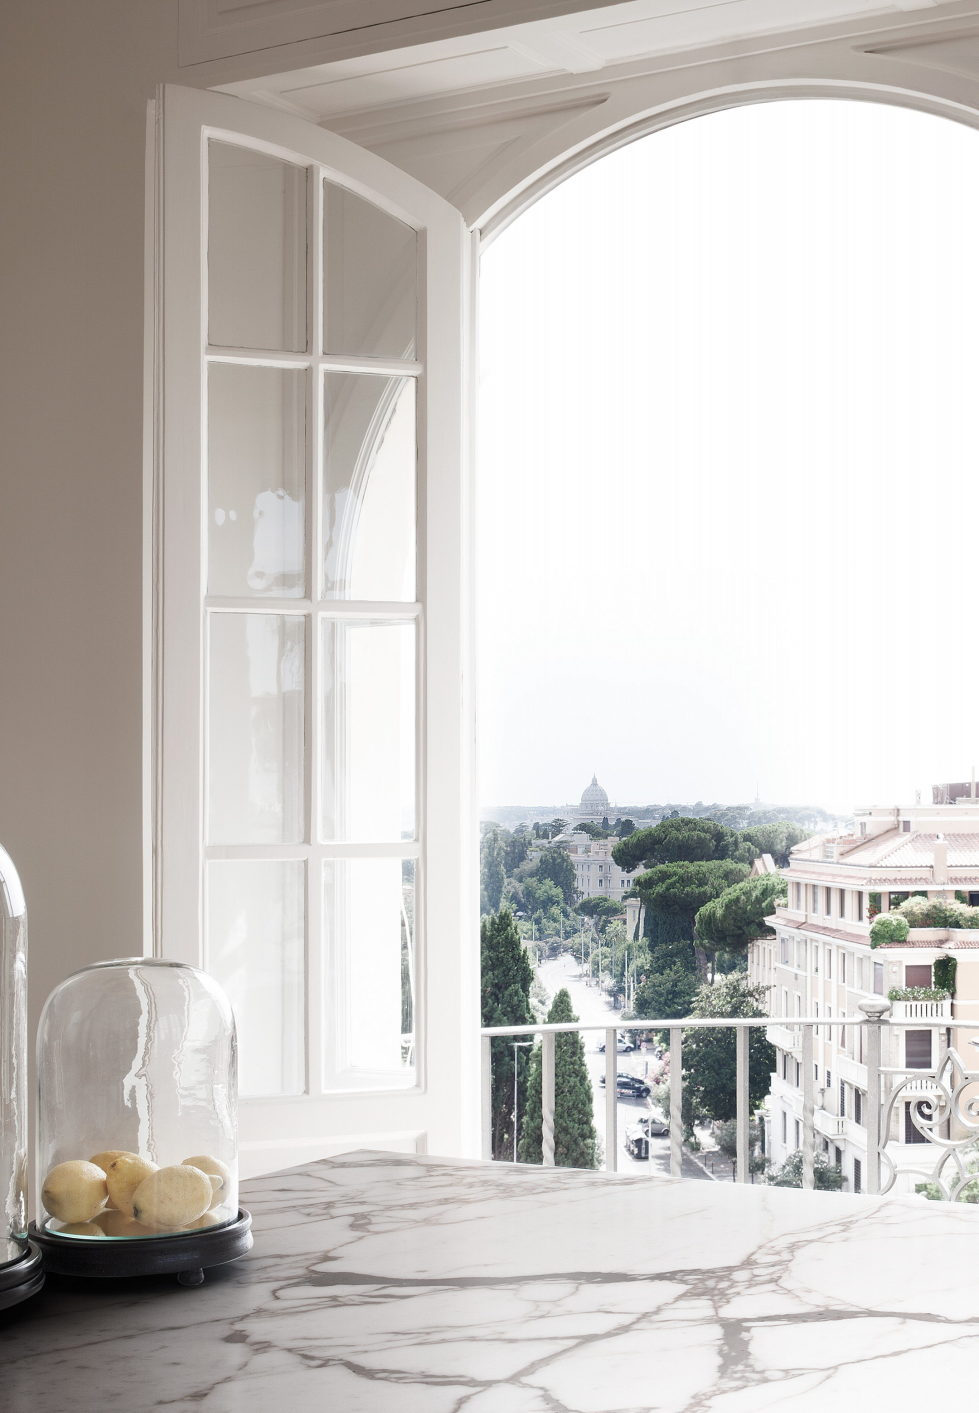 Casa Roma Minimalism And Plenty Of Light In Rome 9